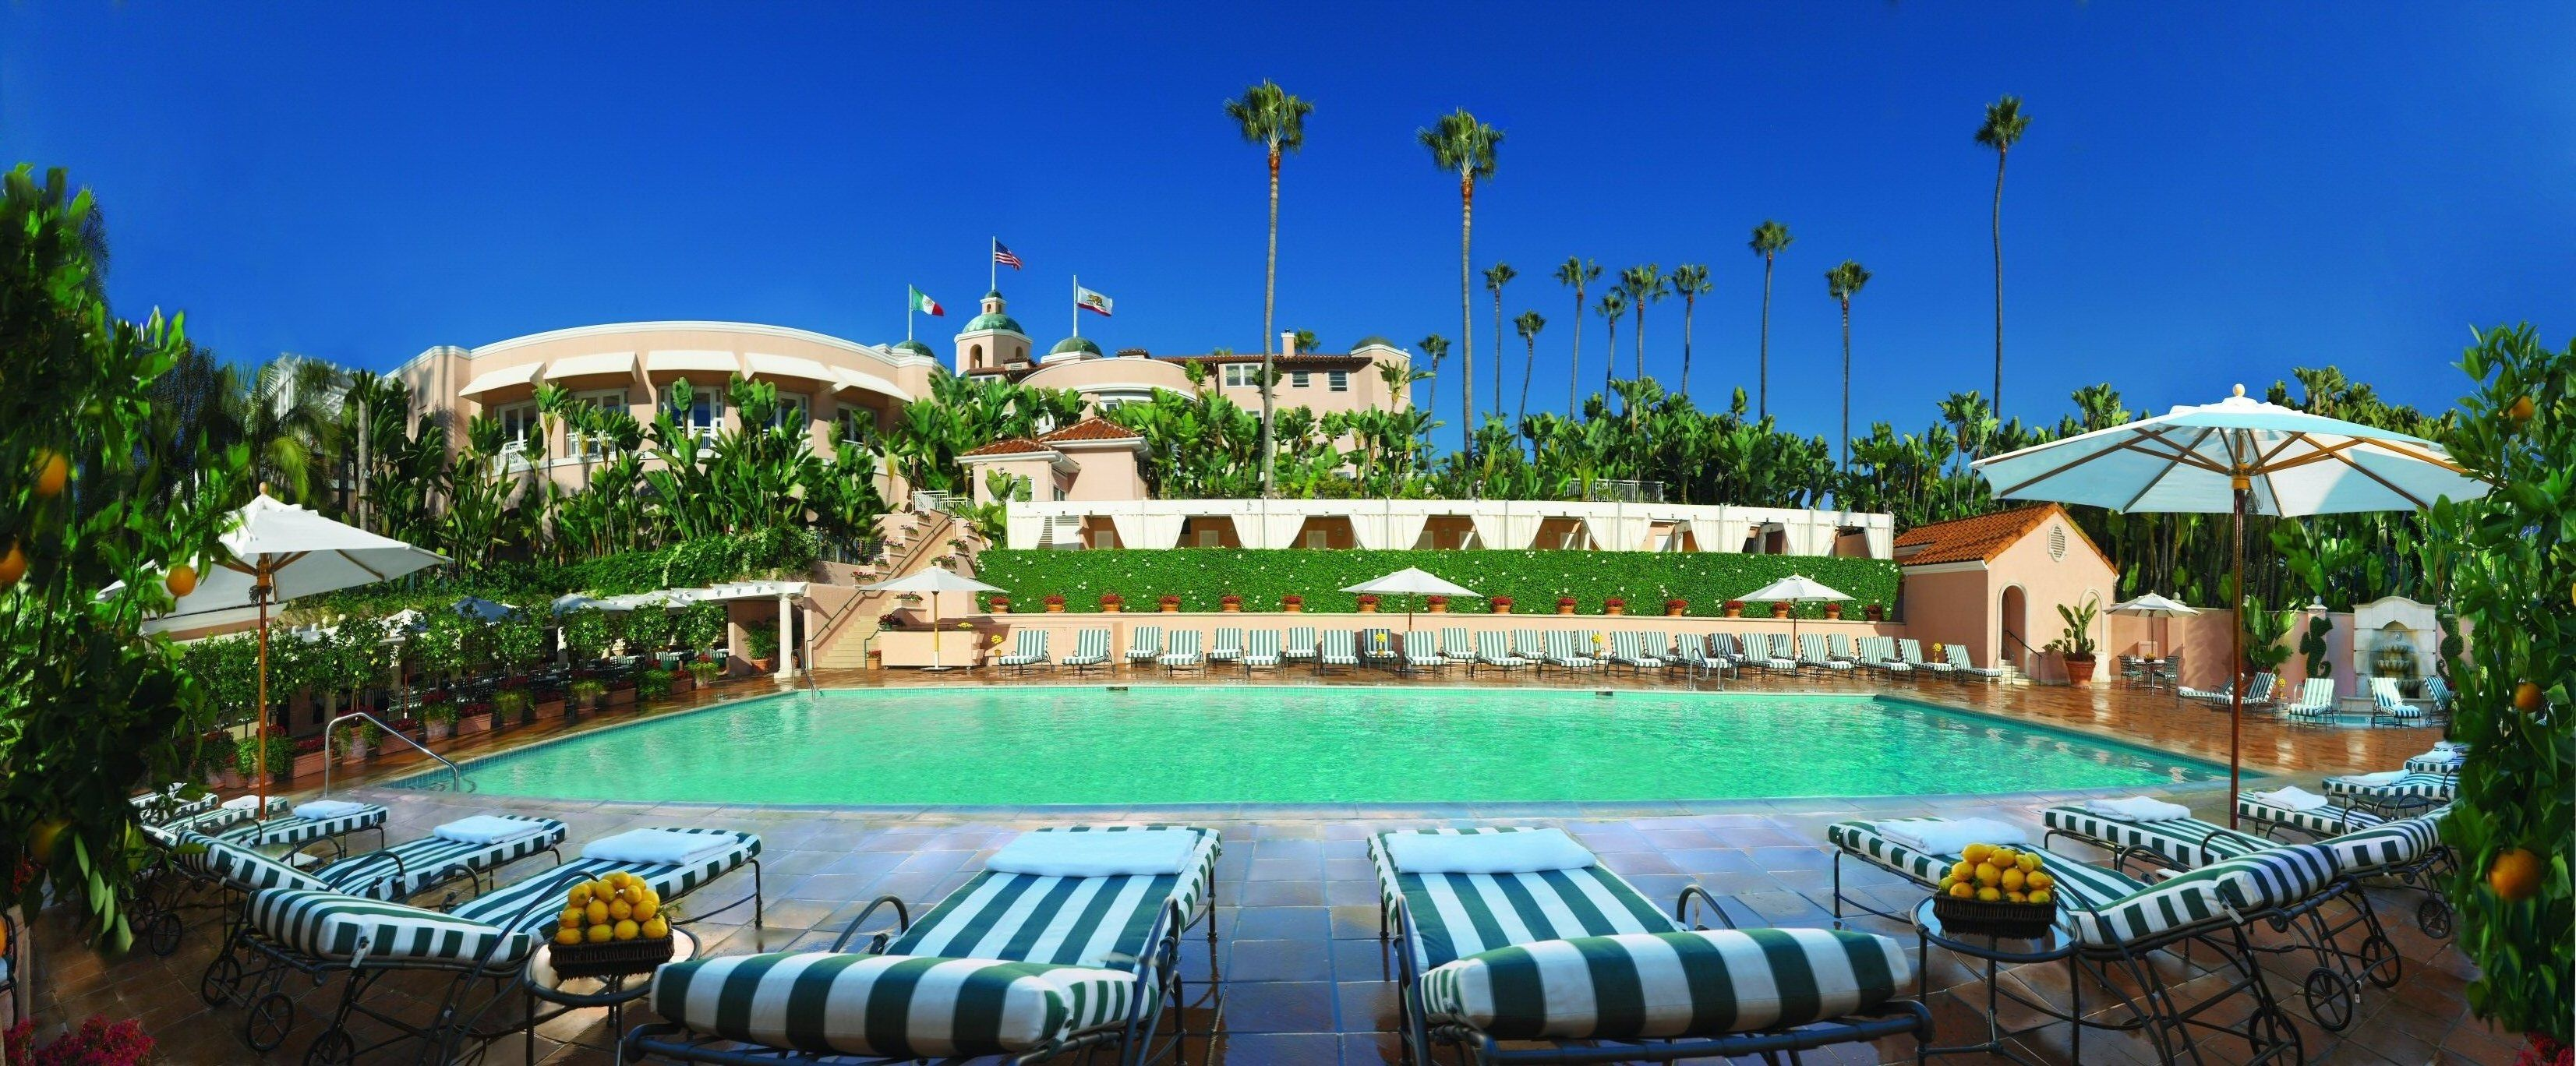 Lov Hotel Collection Beverlyhillshotel Largest Pool In L A I Love L A Bungalow